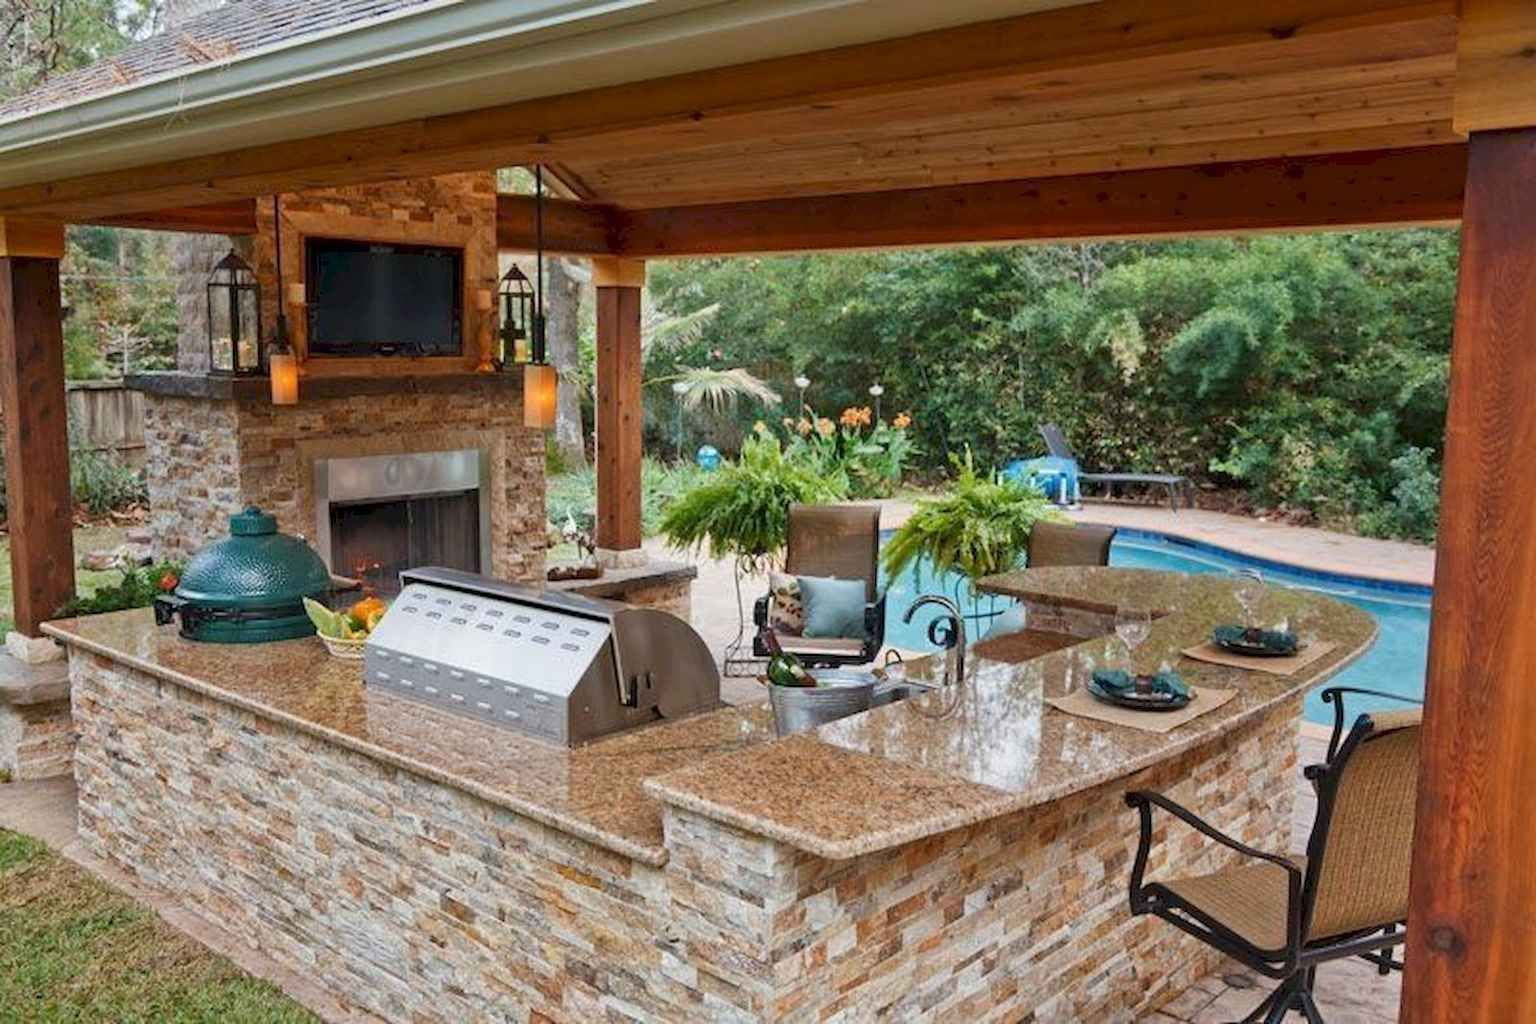 80 Amazing Outdoor Kitchen Design For Your Summer Ideas Outdoor Kitchen Design Outdoor Kitchen Patio Backyard Patio Designs